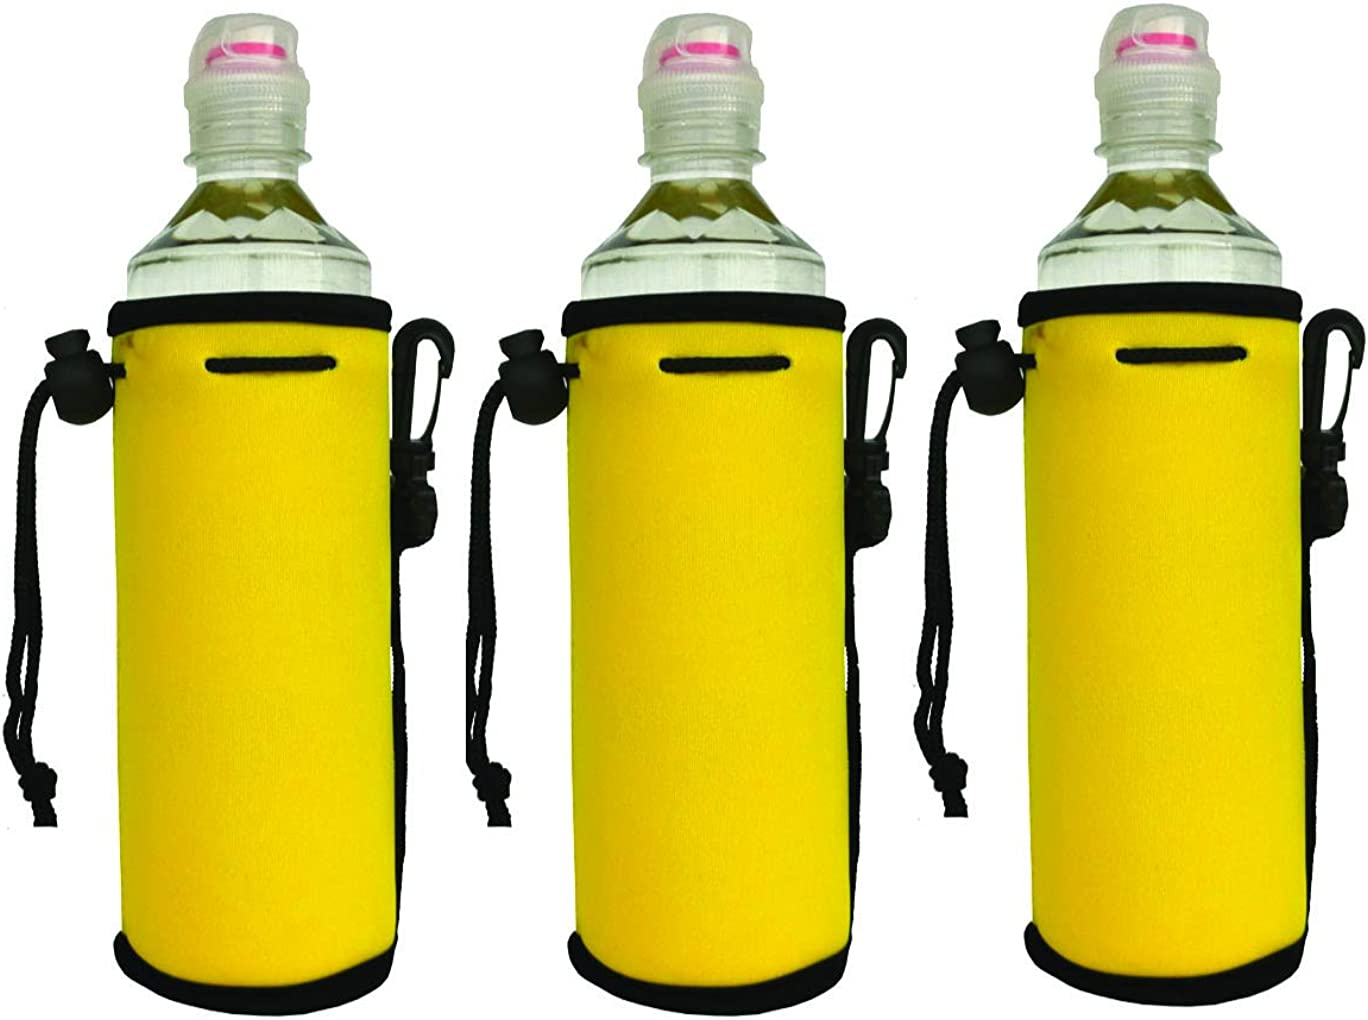 Neoprene Insulated Water Drink Bottle Carrier Cover Sleeve Tote Bag Pouch Holder With Handy Drawstring for Kid Children Women Men Biker Travel Cycling Climbing Sports (3 packs-Yellow)